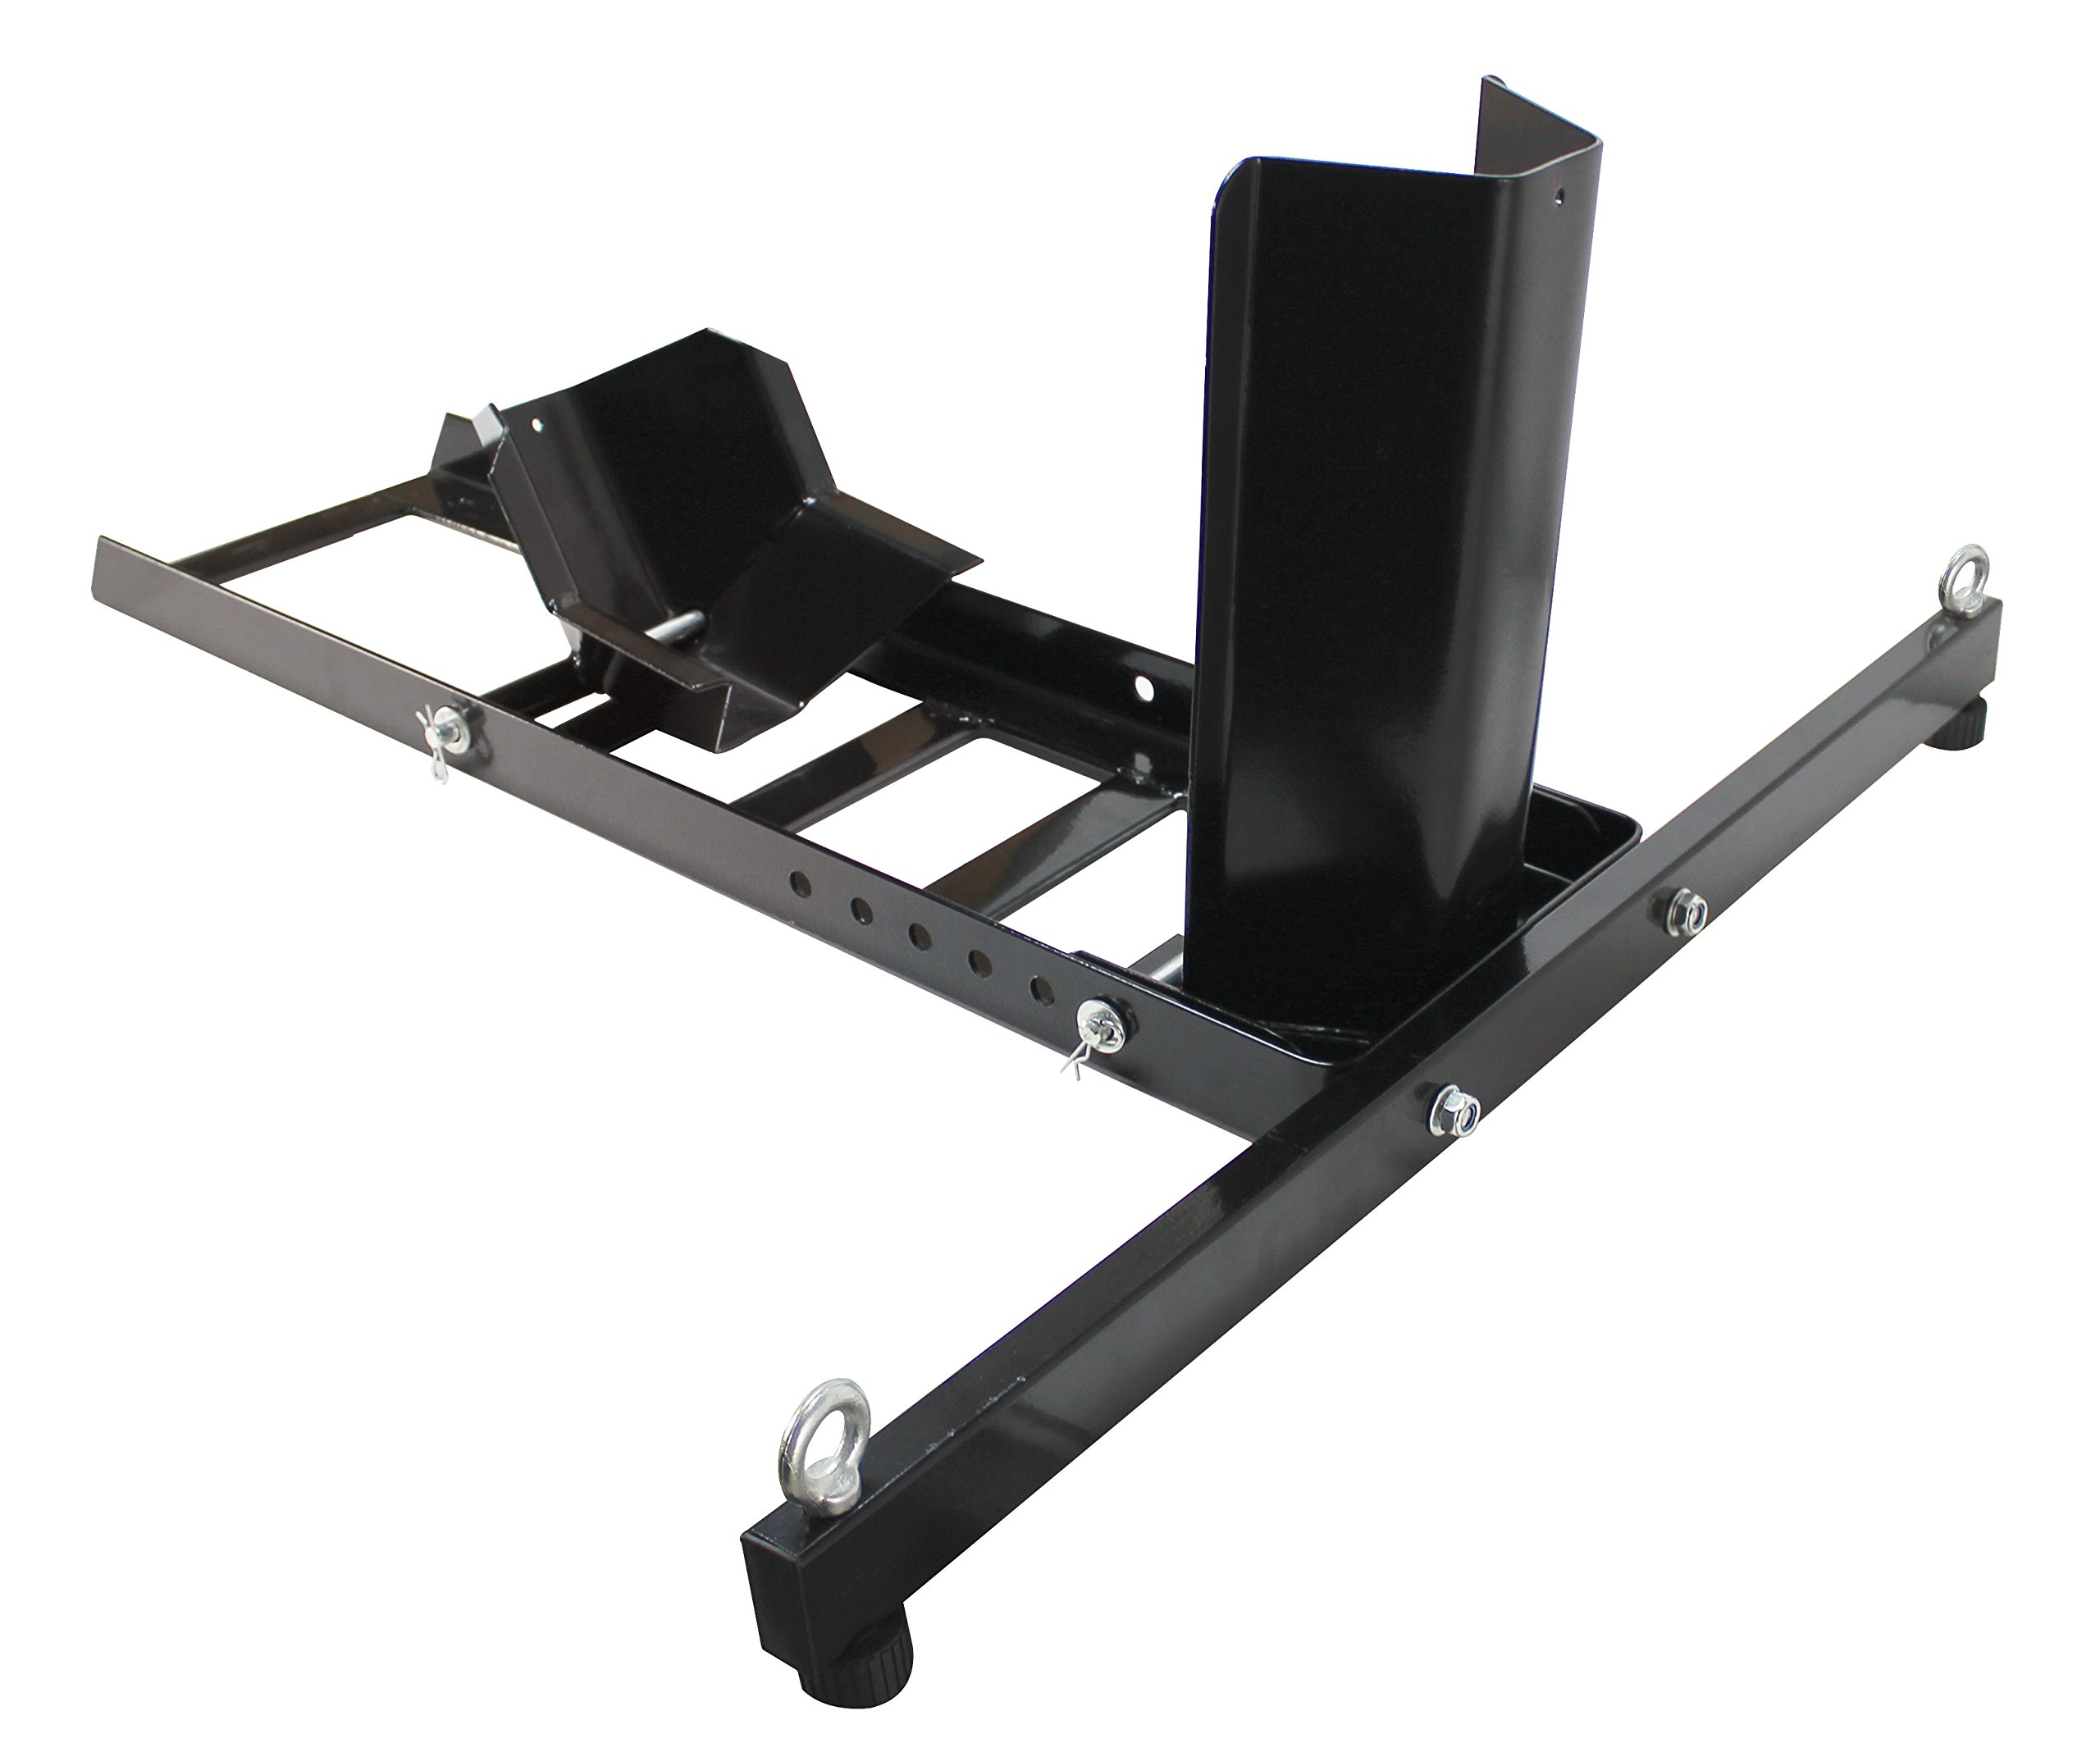 Extreme Max 5001.5757 Adjustable Motorcycle Stand/Wheel Chock-1,800 lbs by Extreme Max (Image #2)